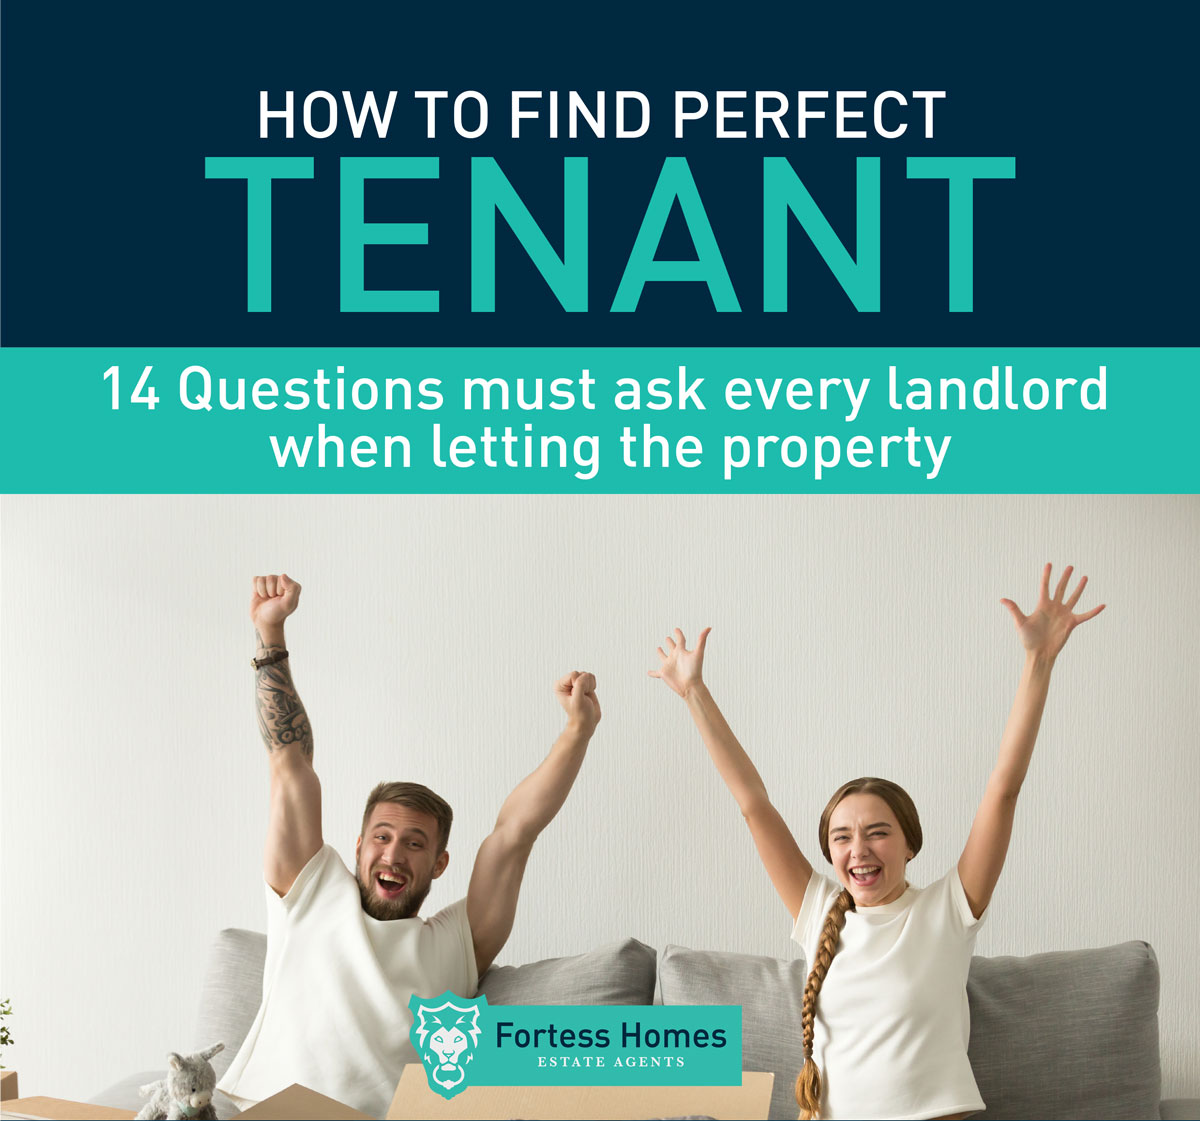 HOW TO FIND PERFECT TENANT